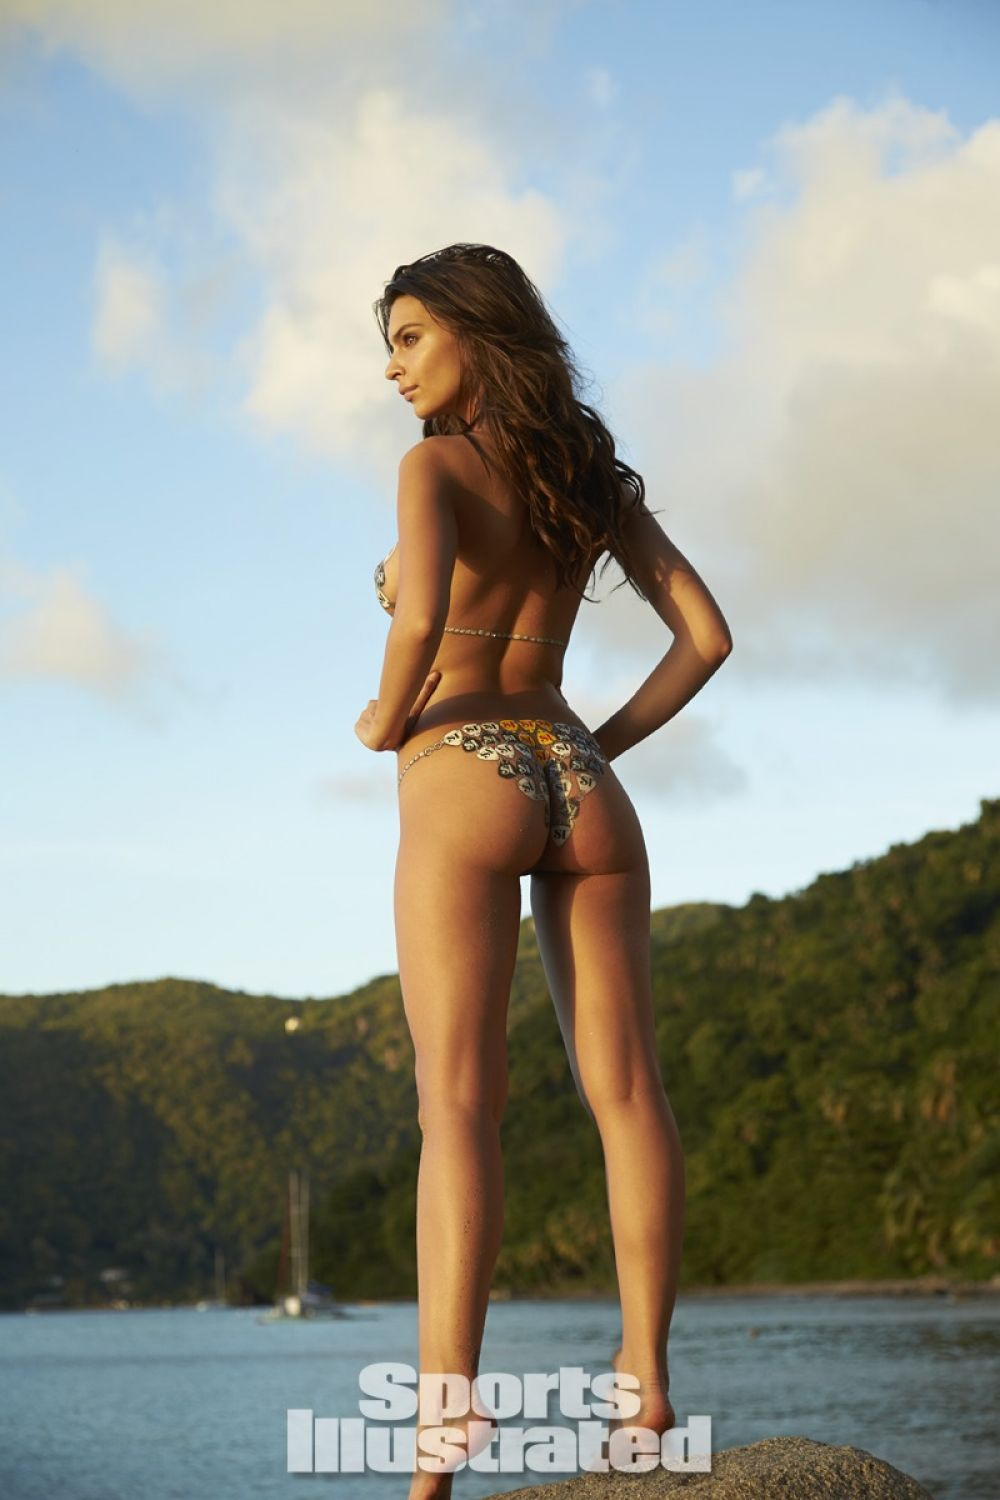 emily-ratajkowski-in-sports-illustrated-2014-swimsuit-issue_16.jpg - 104.95 KB